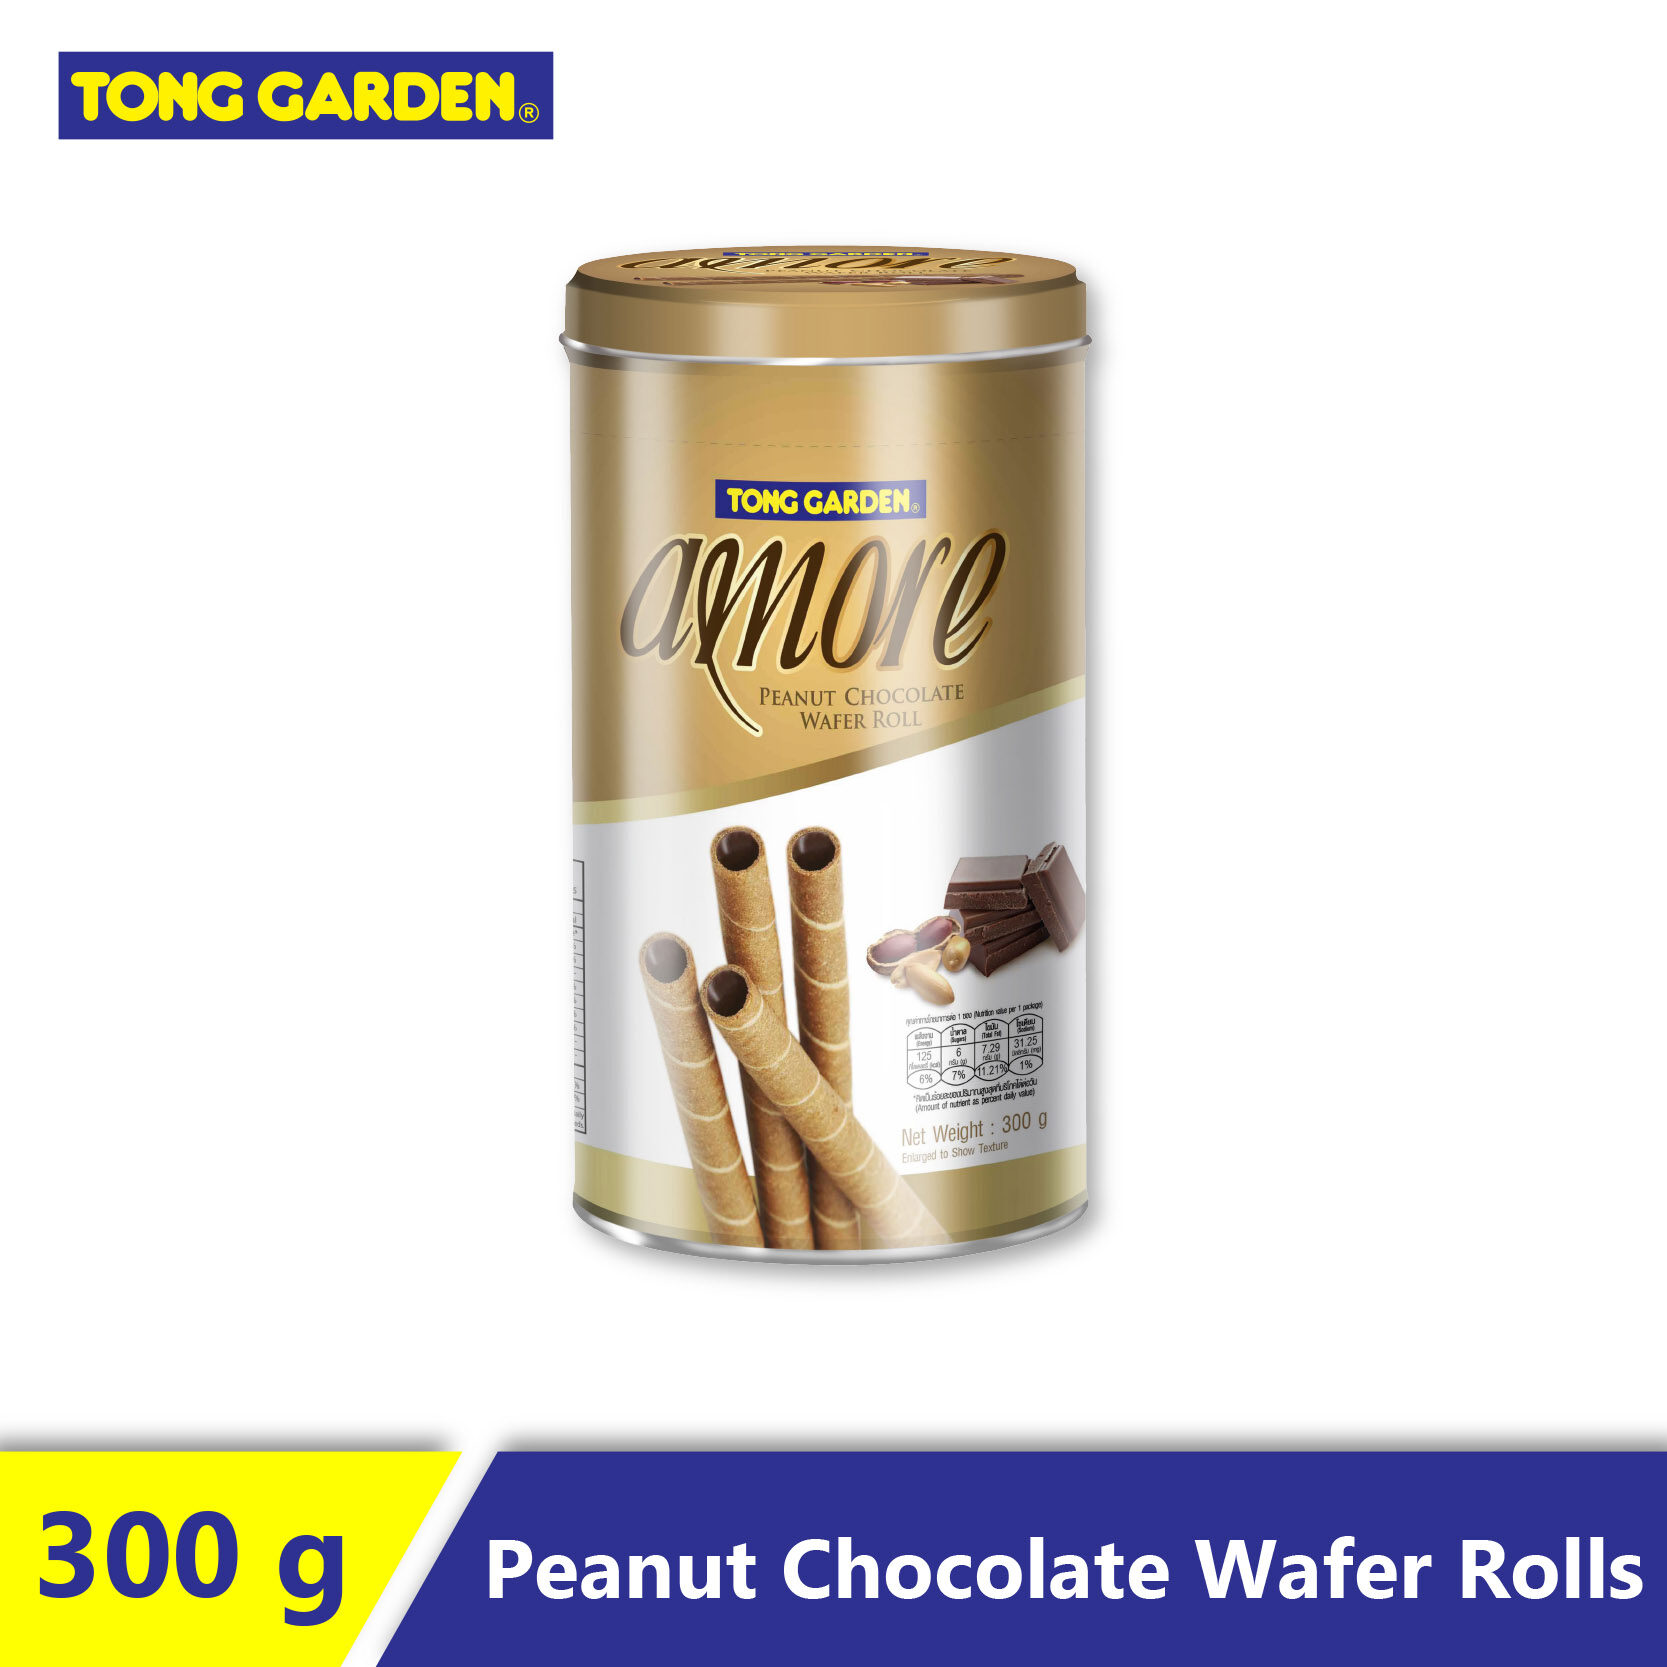 Amore Peanut Chocolate Wafer Rolls 300g